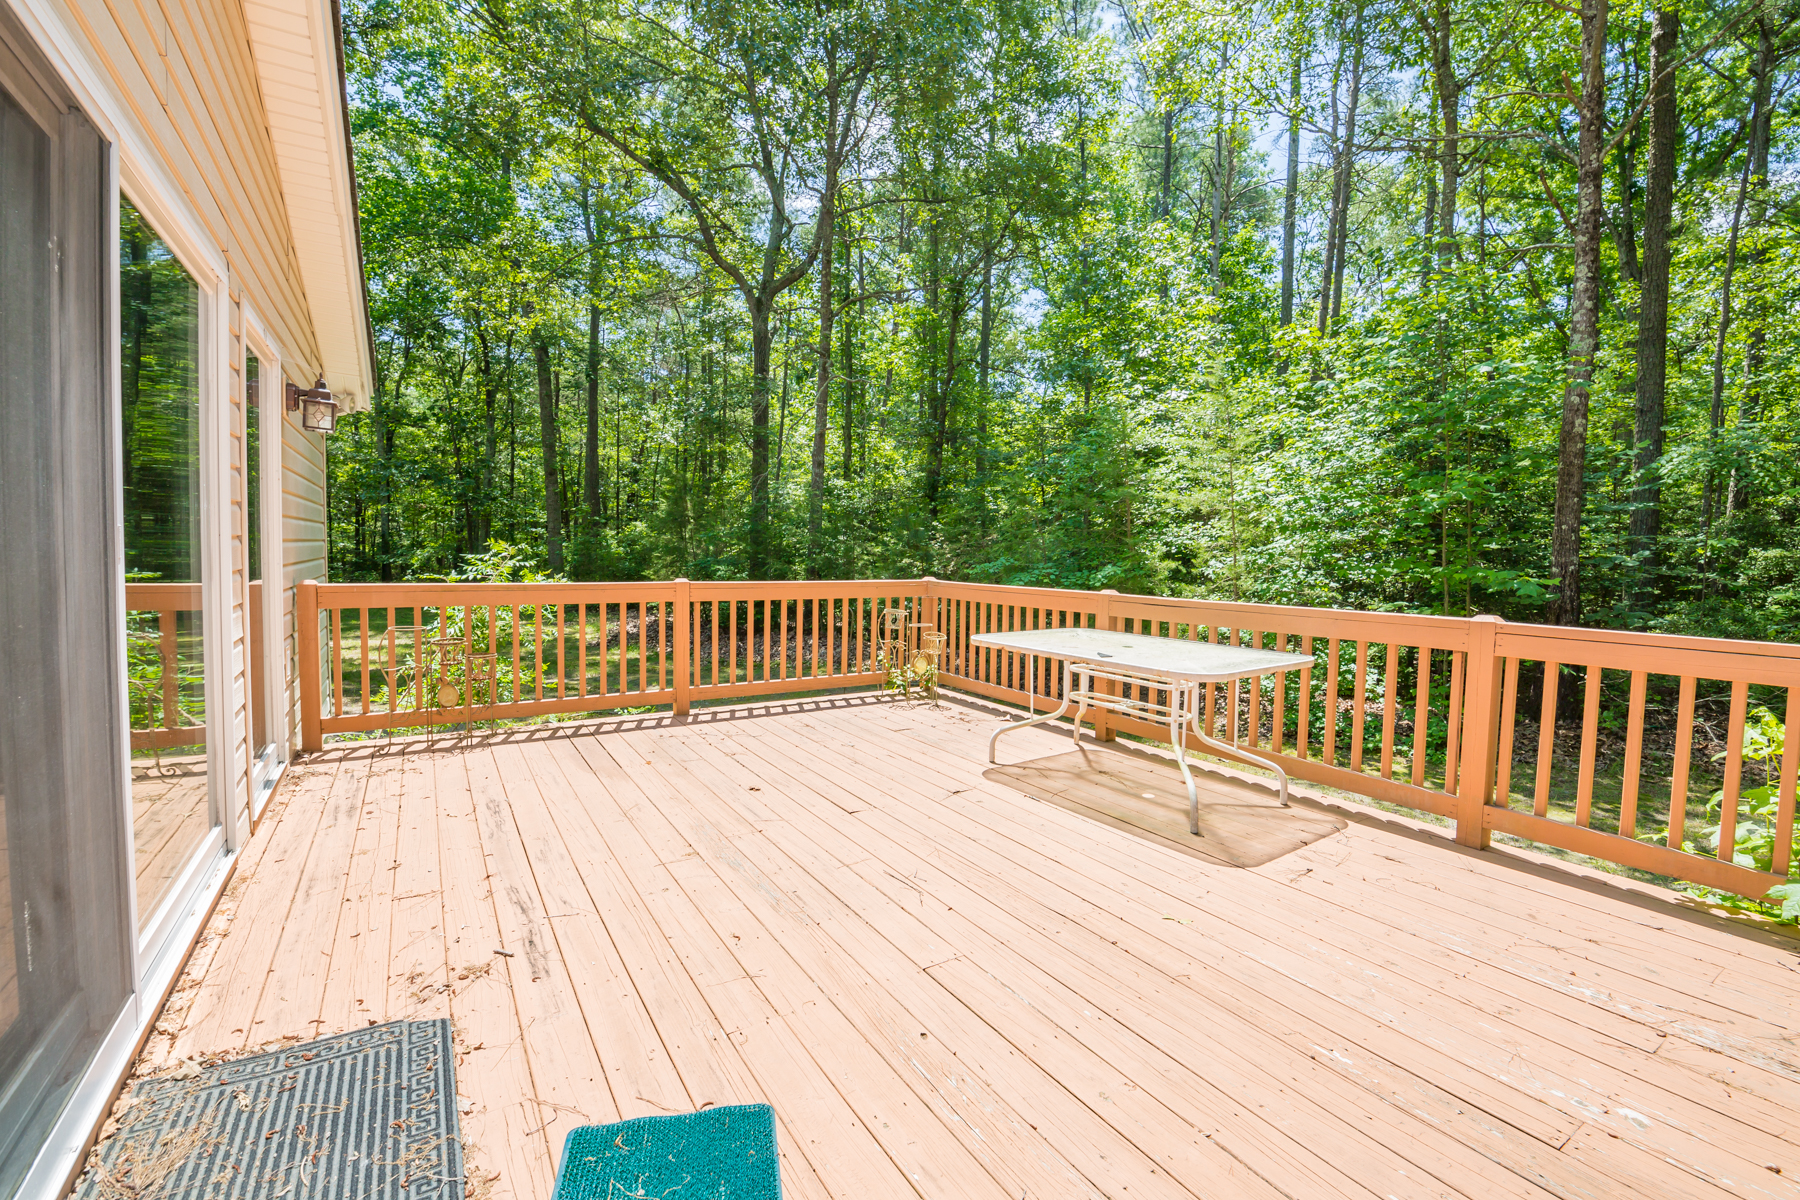 Single Family Home for Sale at FOXHAVEN 3592 DUNROVIN LANE Gloucester, Virginia, 23061 United States